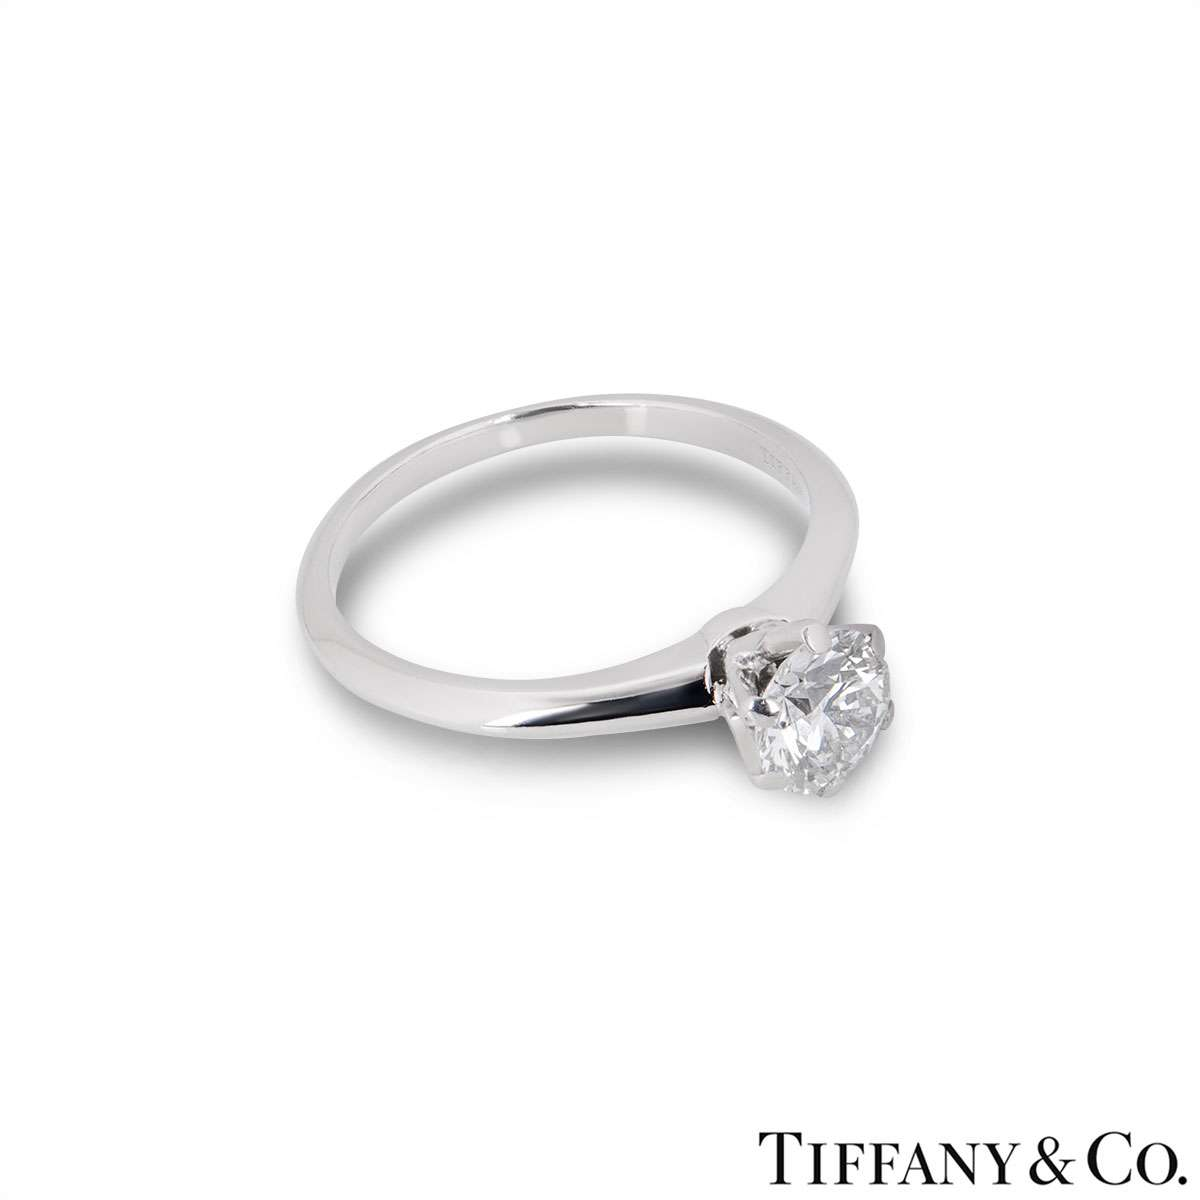 Tiffany & Co. Round Brilliant Cut Diamond Ring 1.02ct I/VS1